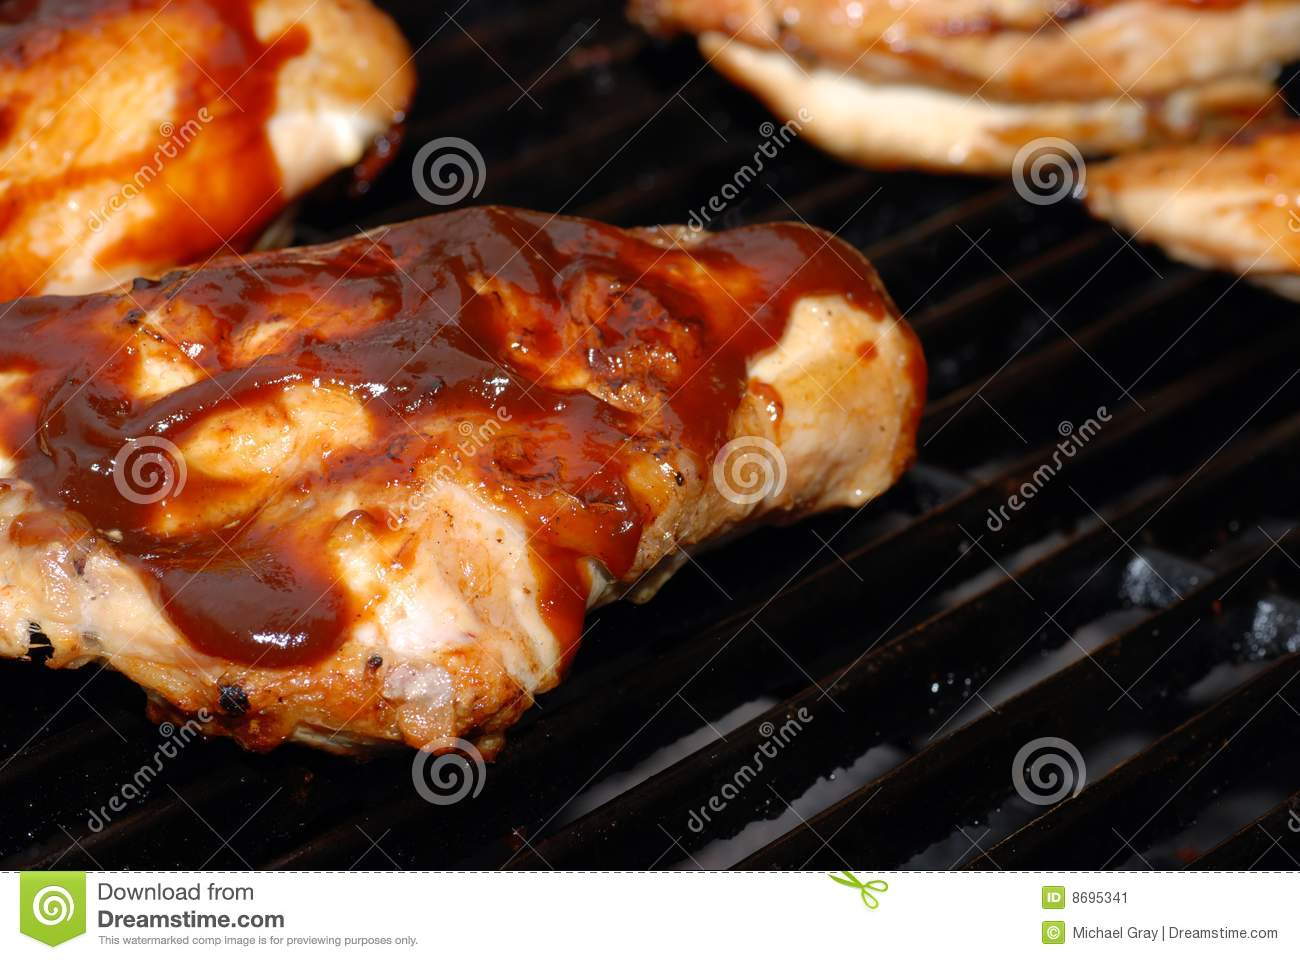 Barbecue Chicken Breast On A Grill Stock Image - Image ...